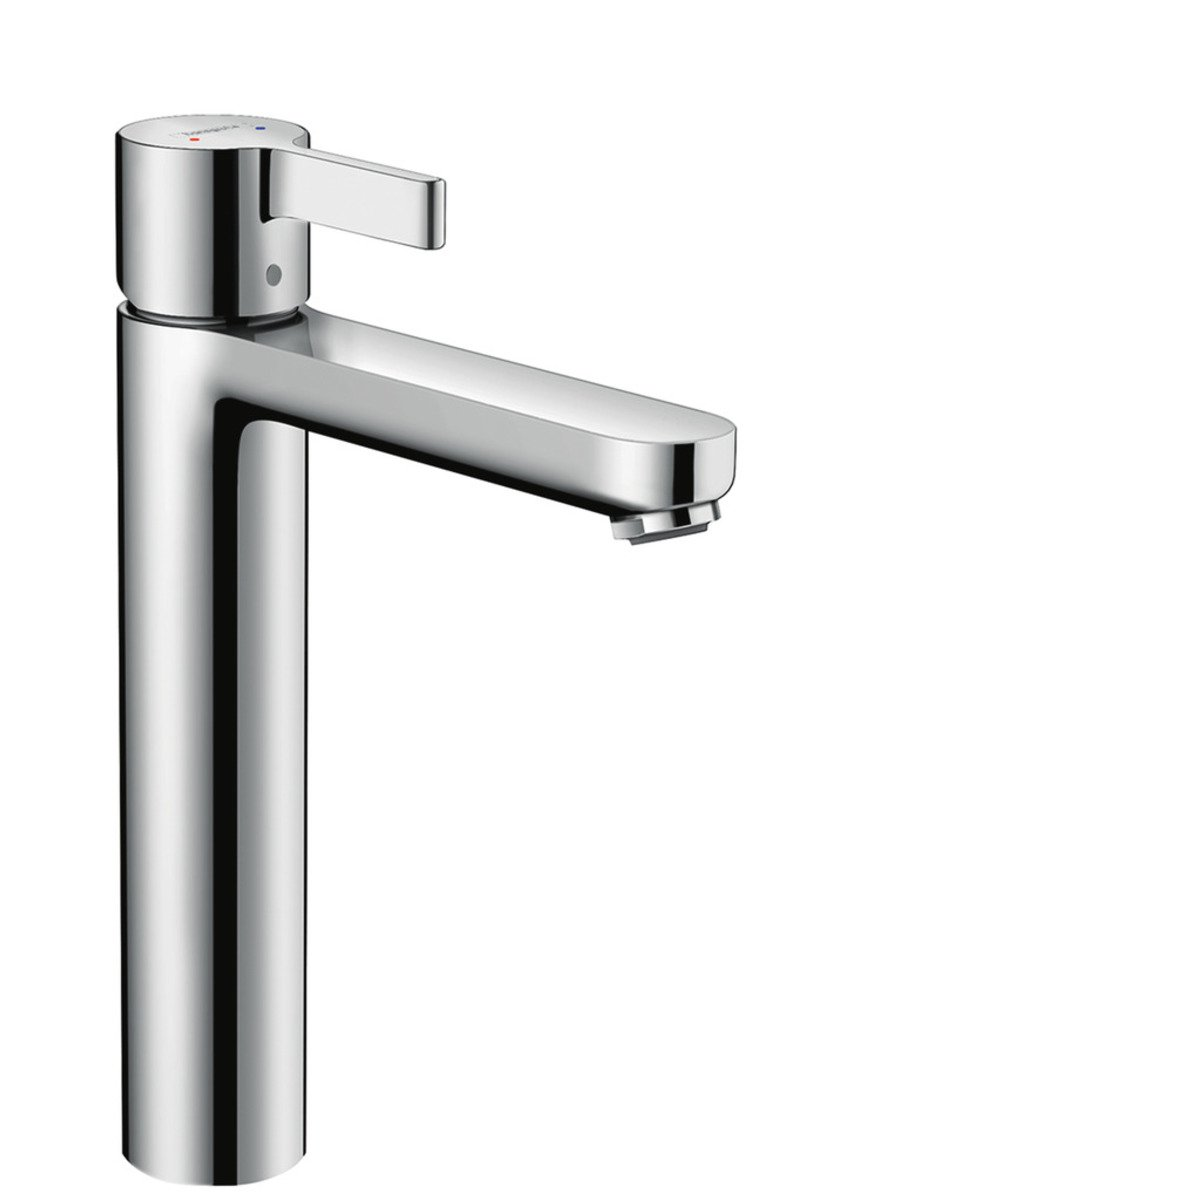 hansgrohe metris s robinet pour lavabo 1 trou highriser chrome 31026000. Black Bedroom Furniture Sets. Home Design Ideas